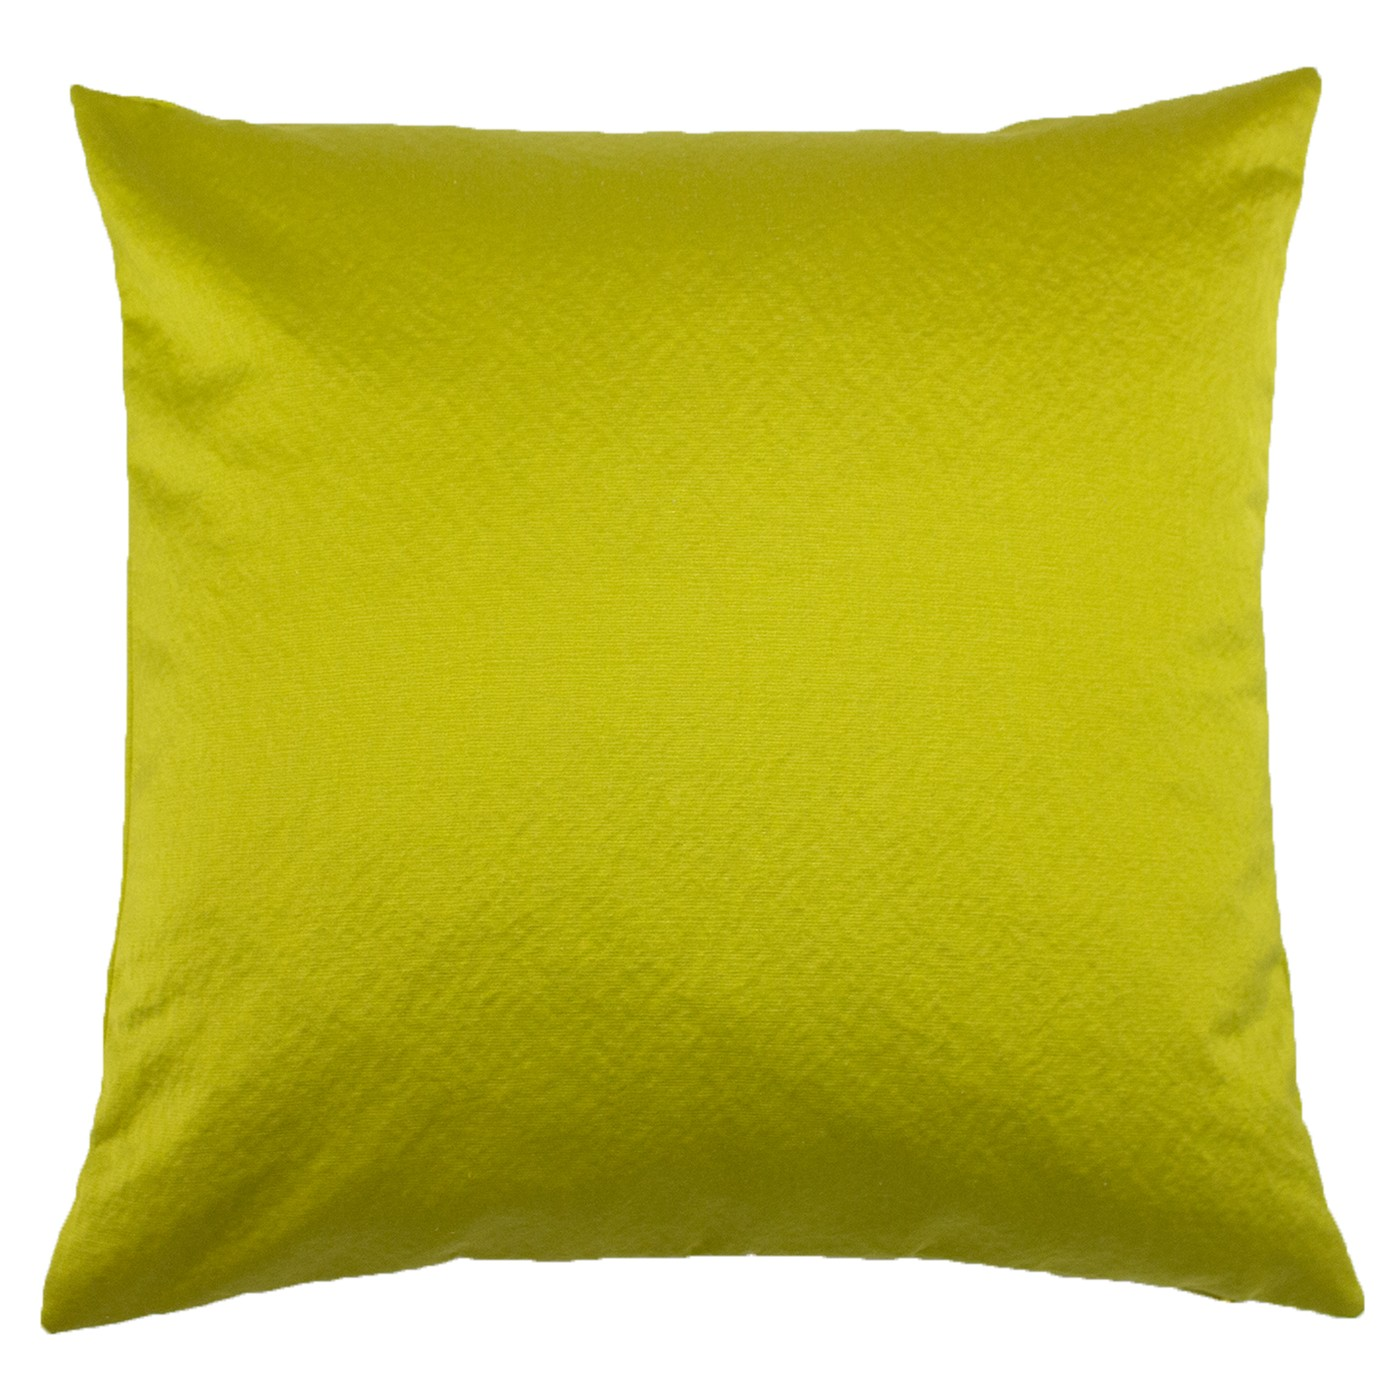 The Home Furnishings Company Palermo Citrine Lime Cushion Cushion 45x45cms